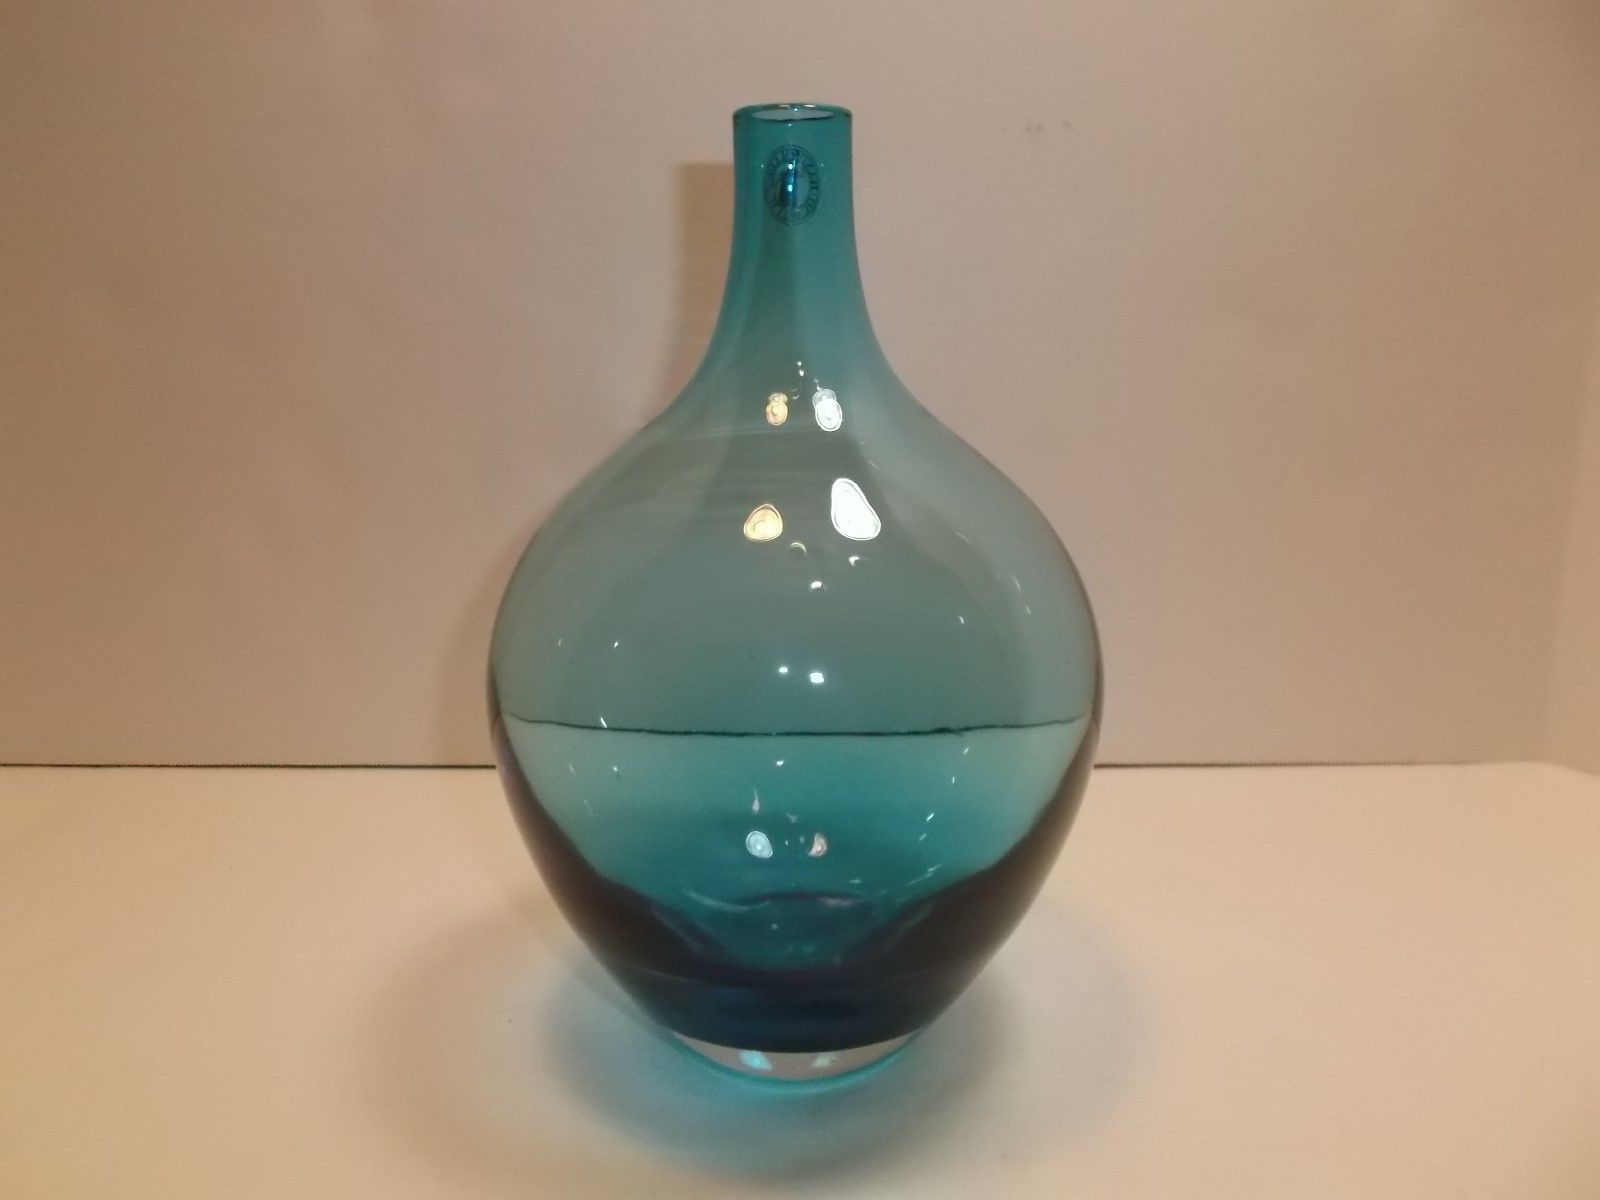 "IKEA OF SWEDEN BLUE GLASS VASE 8"" TALL https://t.co/KKRz3uIKiE https://t.co/cRBUXy43ZV"